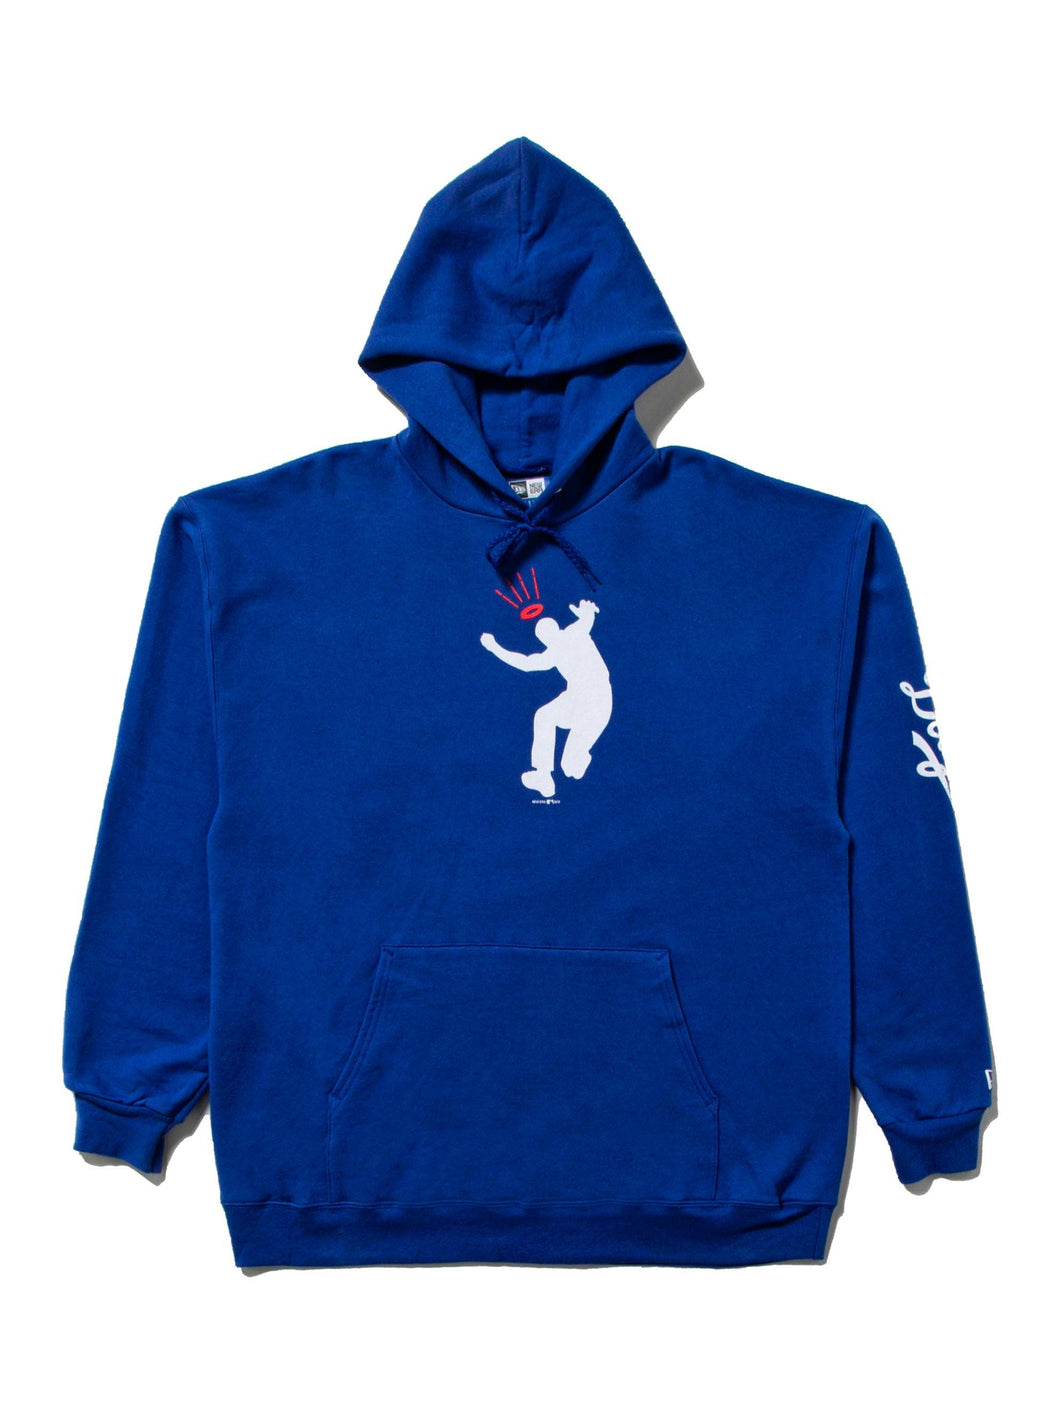 [ARCHIVED] Union x Dodgers Elysian Frontman Hoodie - Blue